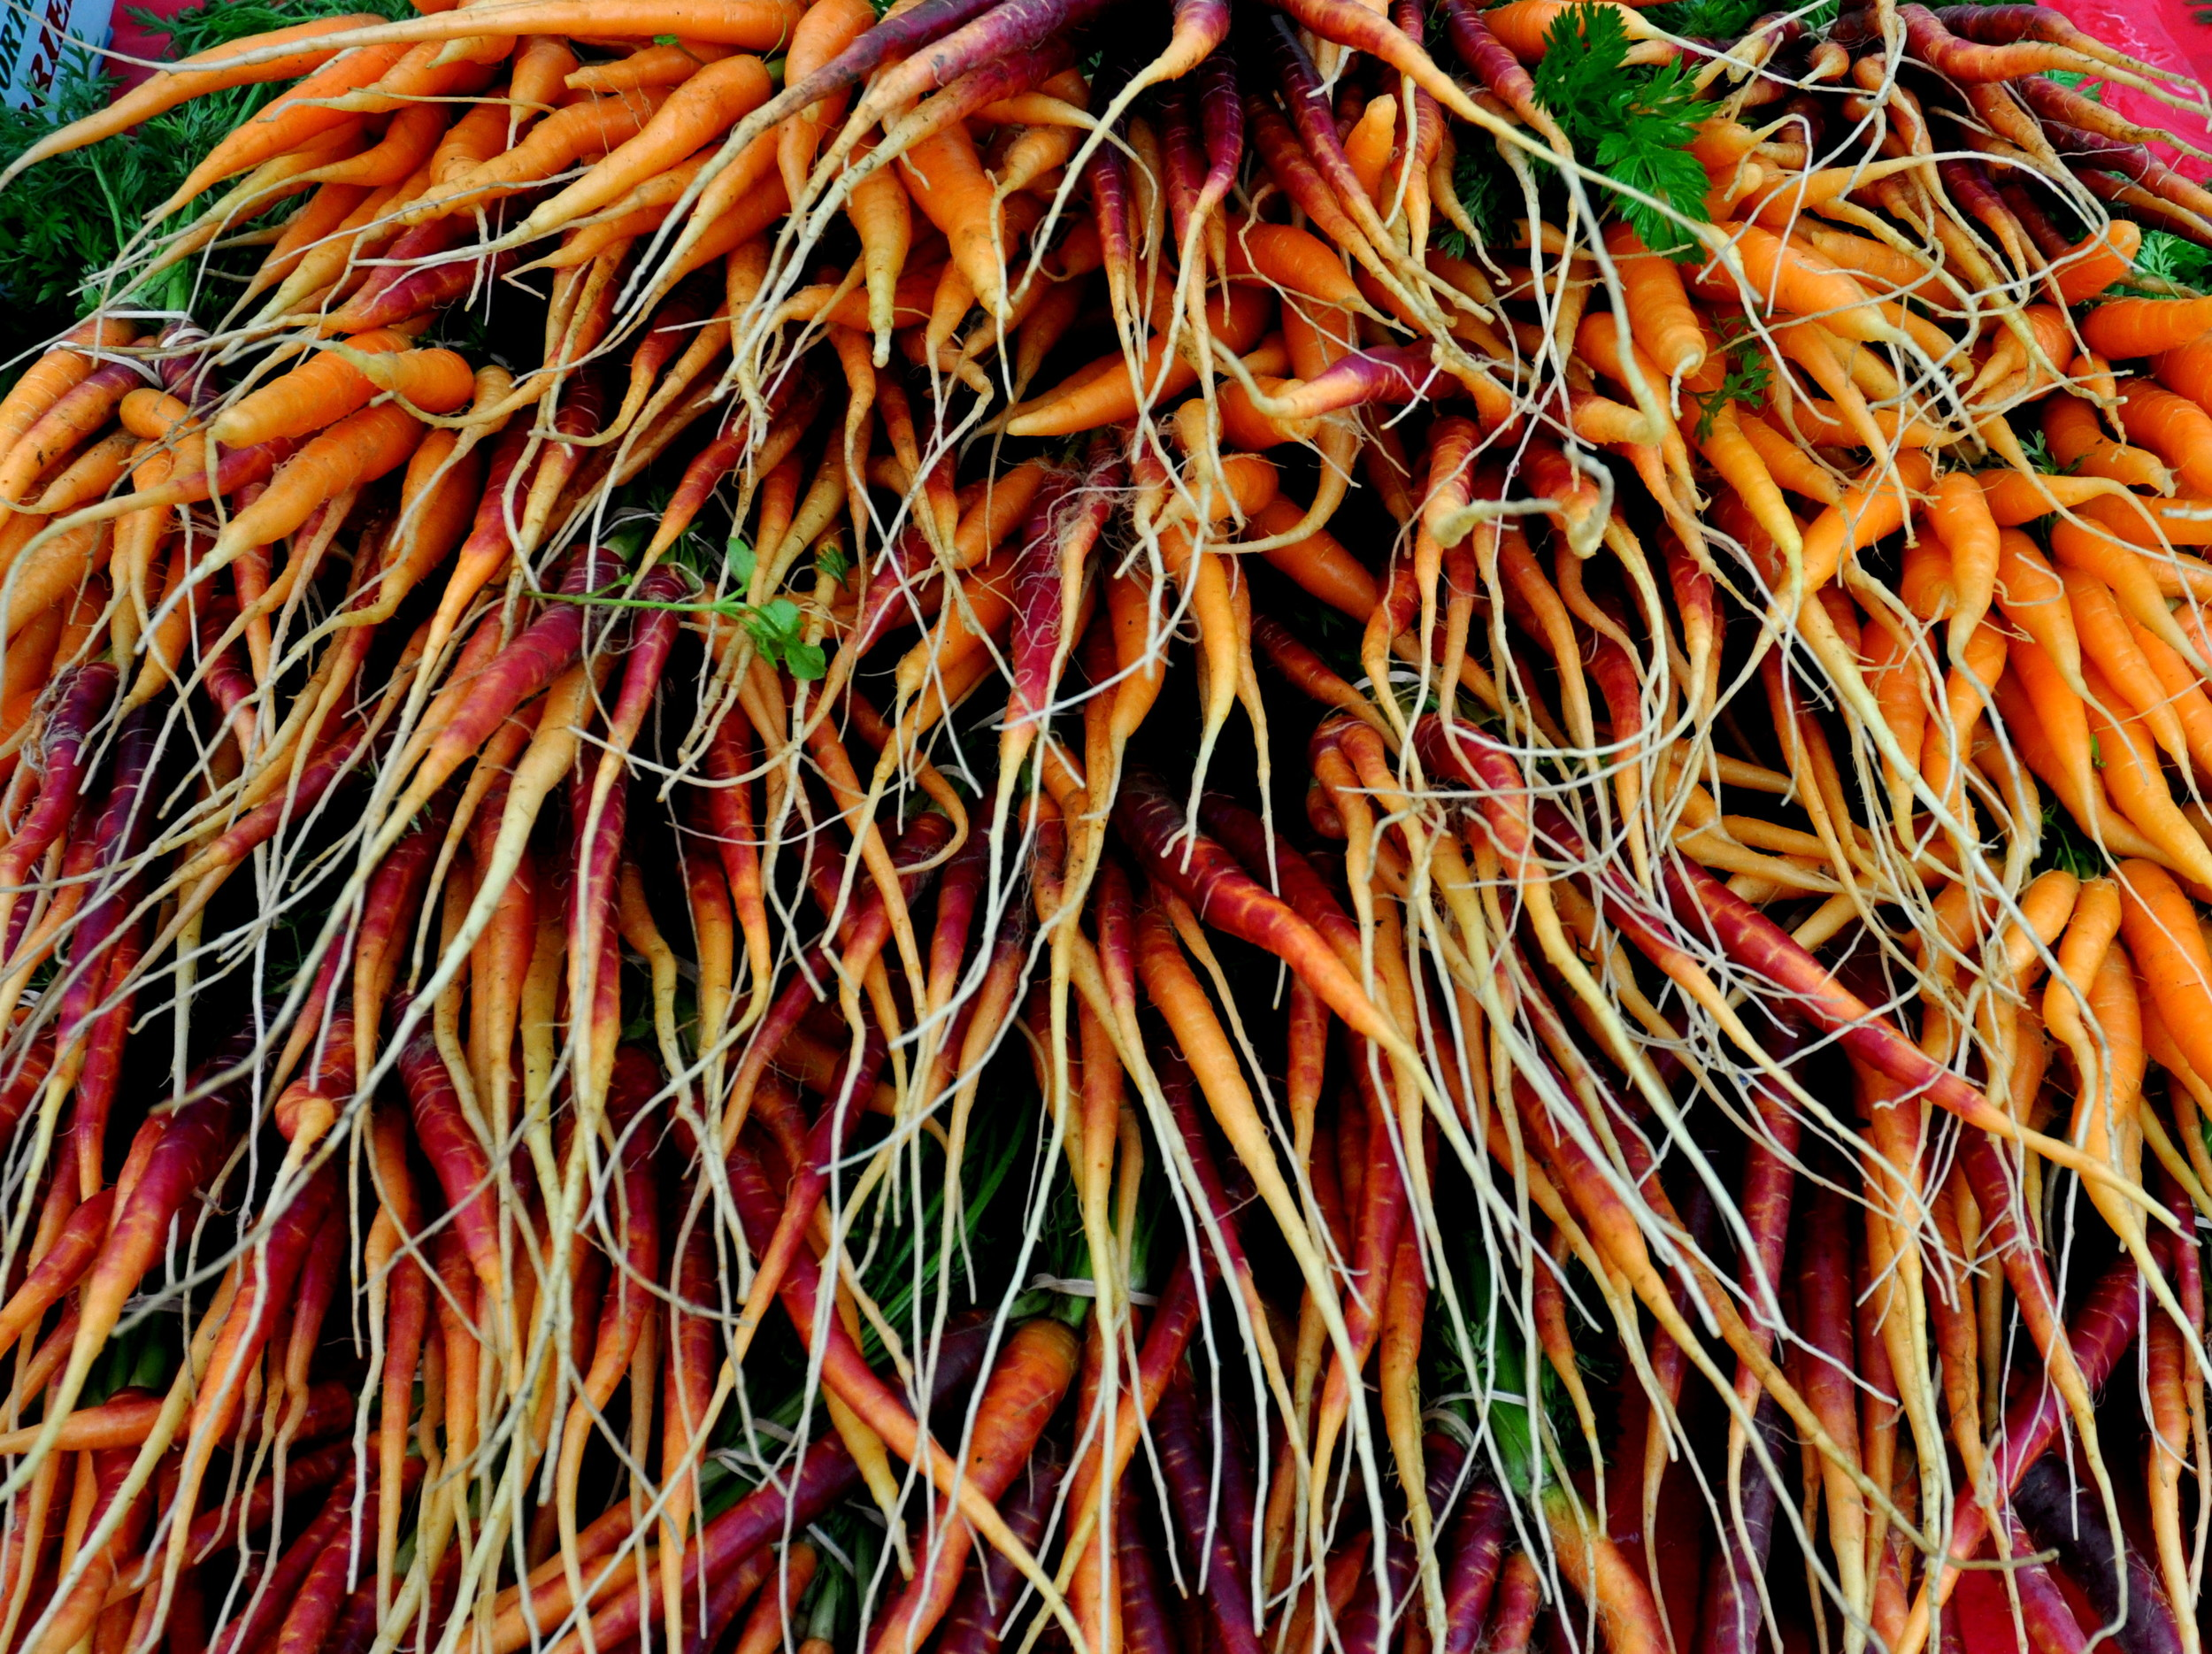 An explosion of carrots from Gaia's Natural Goods. Photo copyright 2012 by Zachary D. Lyons.